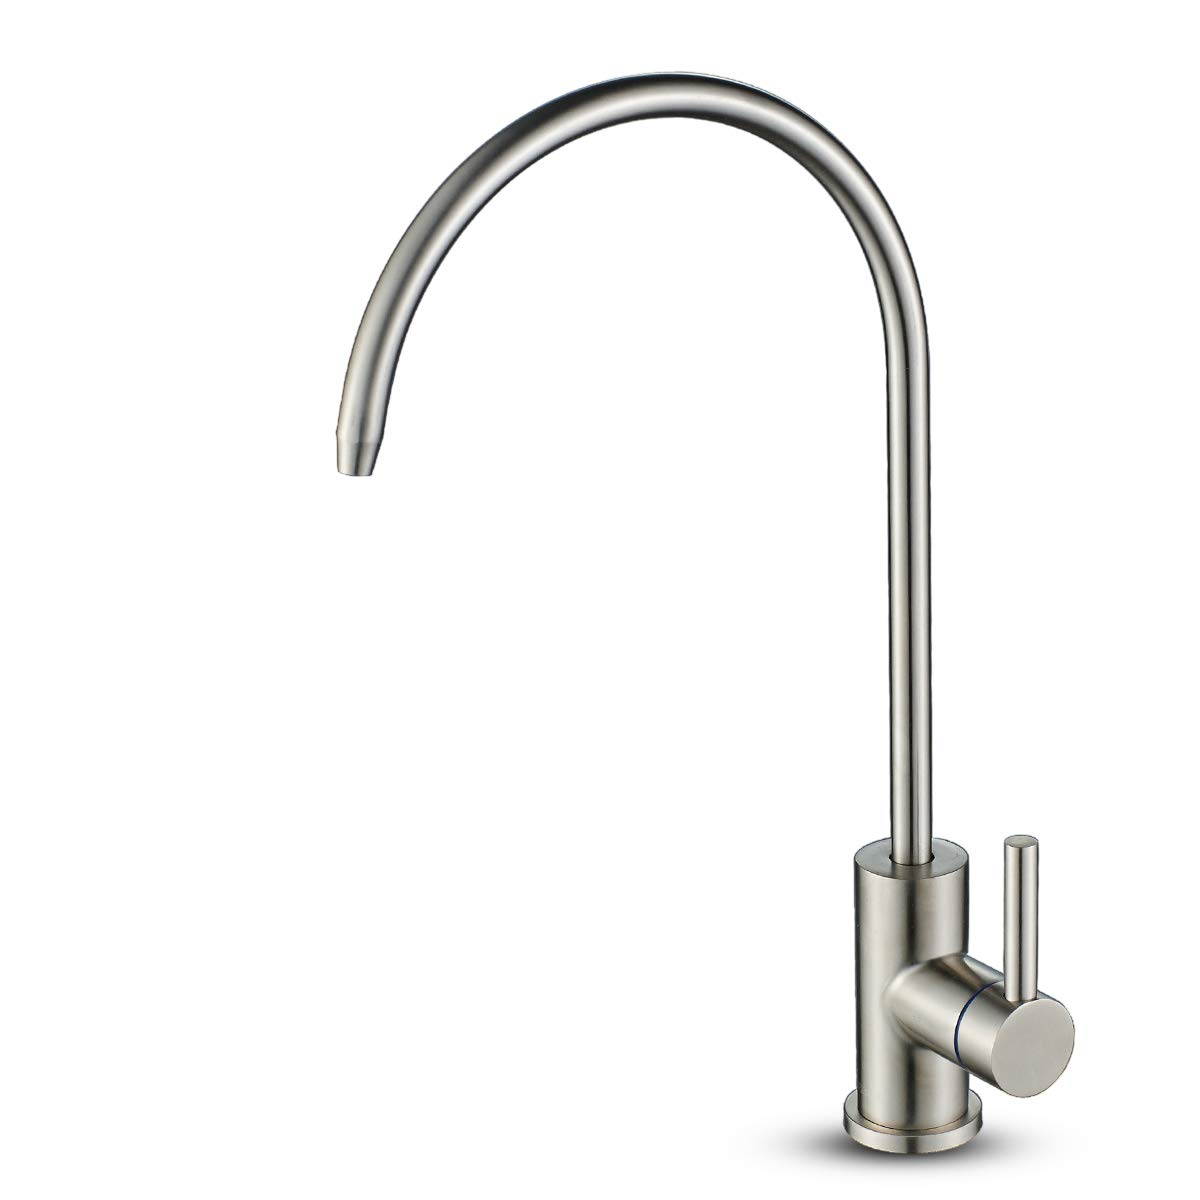 ROVOGO Water Filter Purifier Faucet, Lead-Free Drinking Water Faucet for Water Filtration, Stainless Steel Kitchen Bar-Prep Faucet, Non-Air Gap Cold Water Only